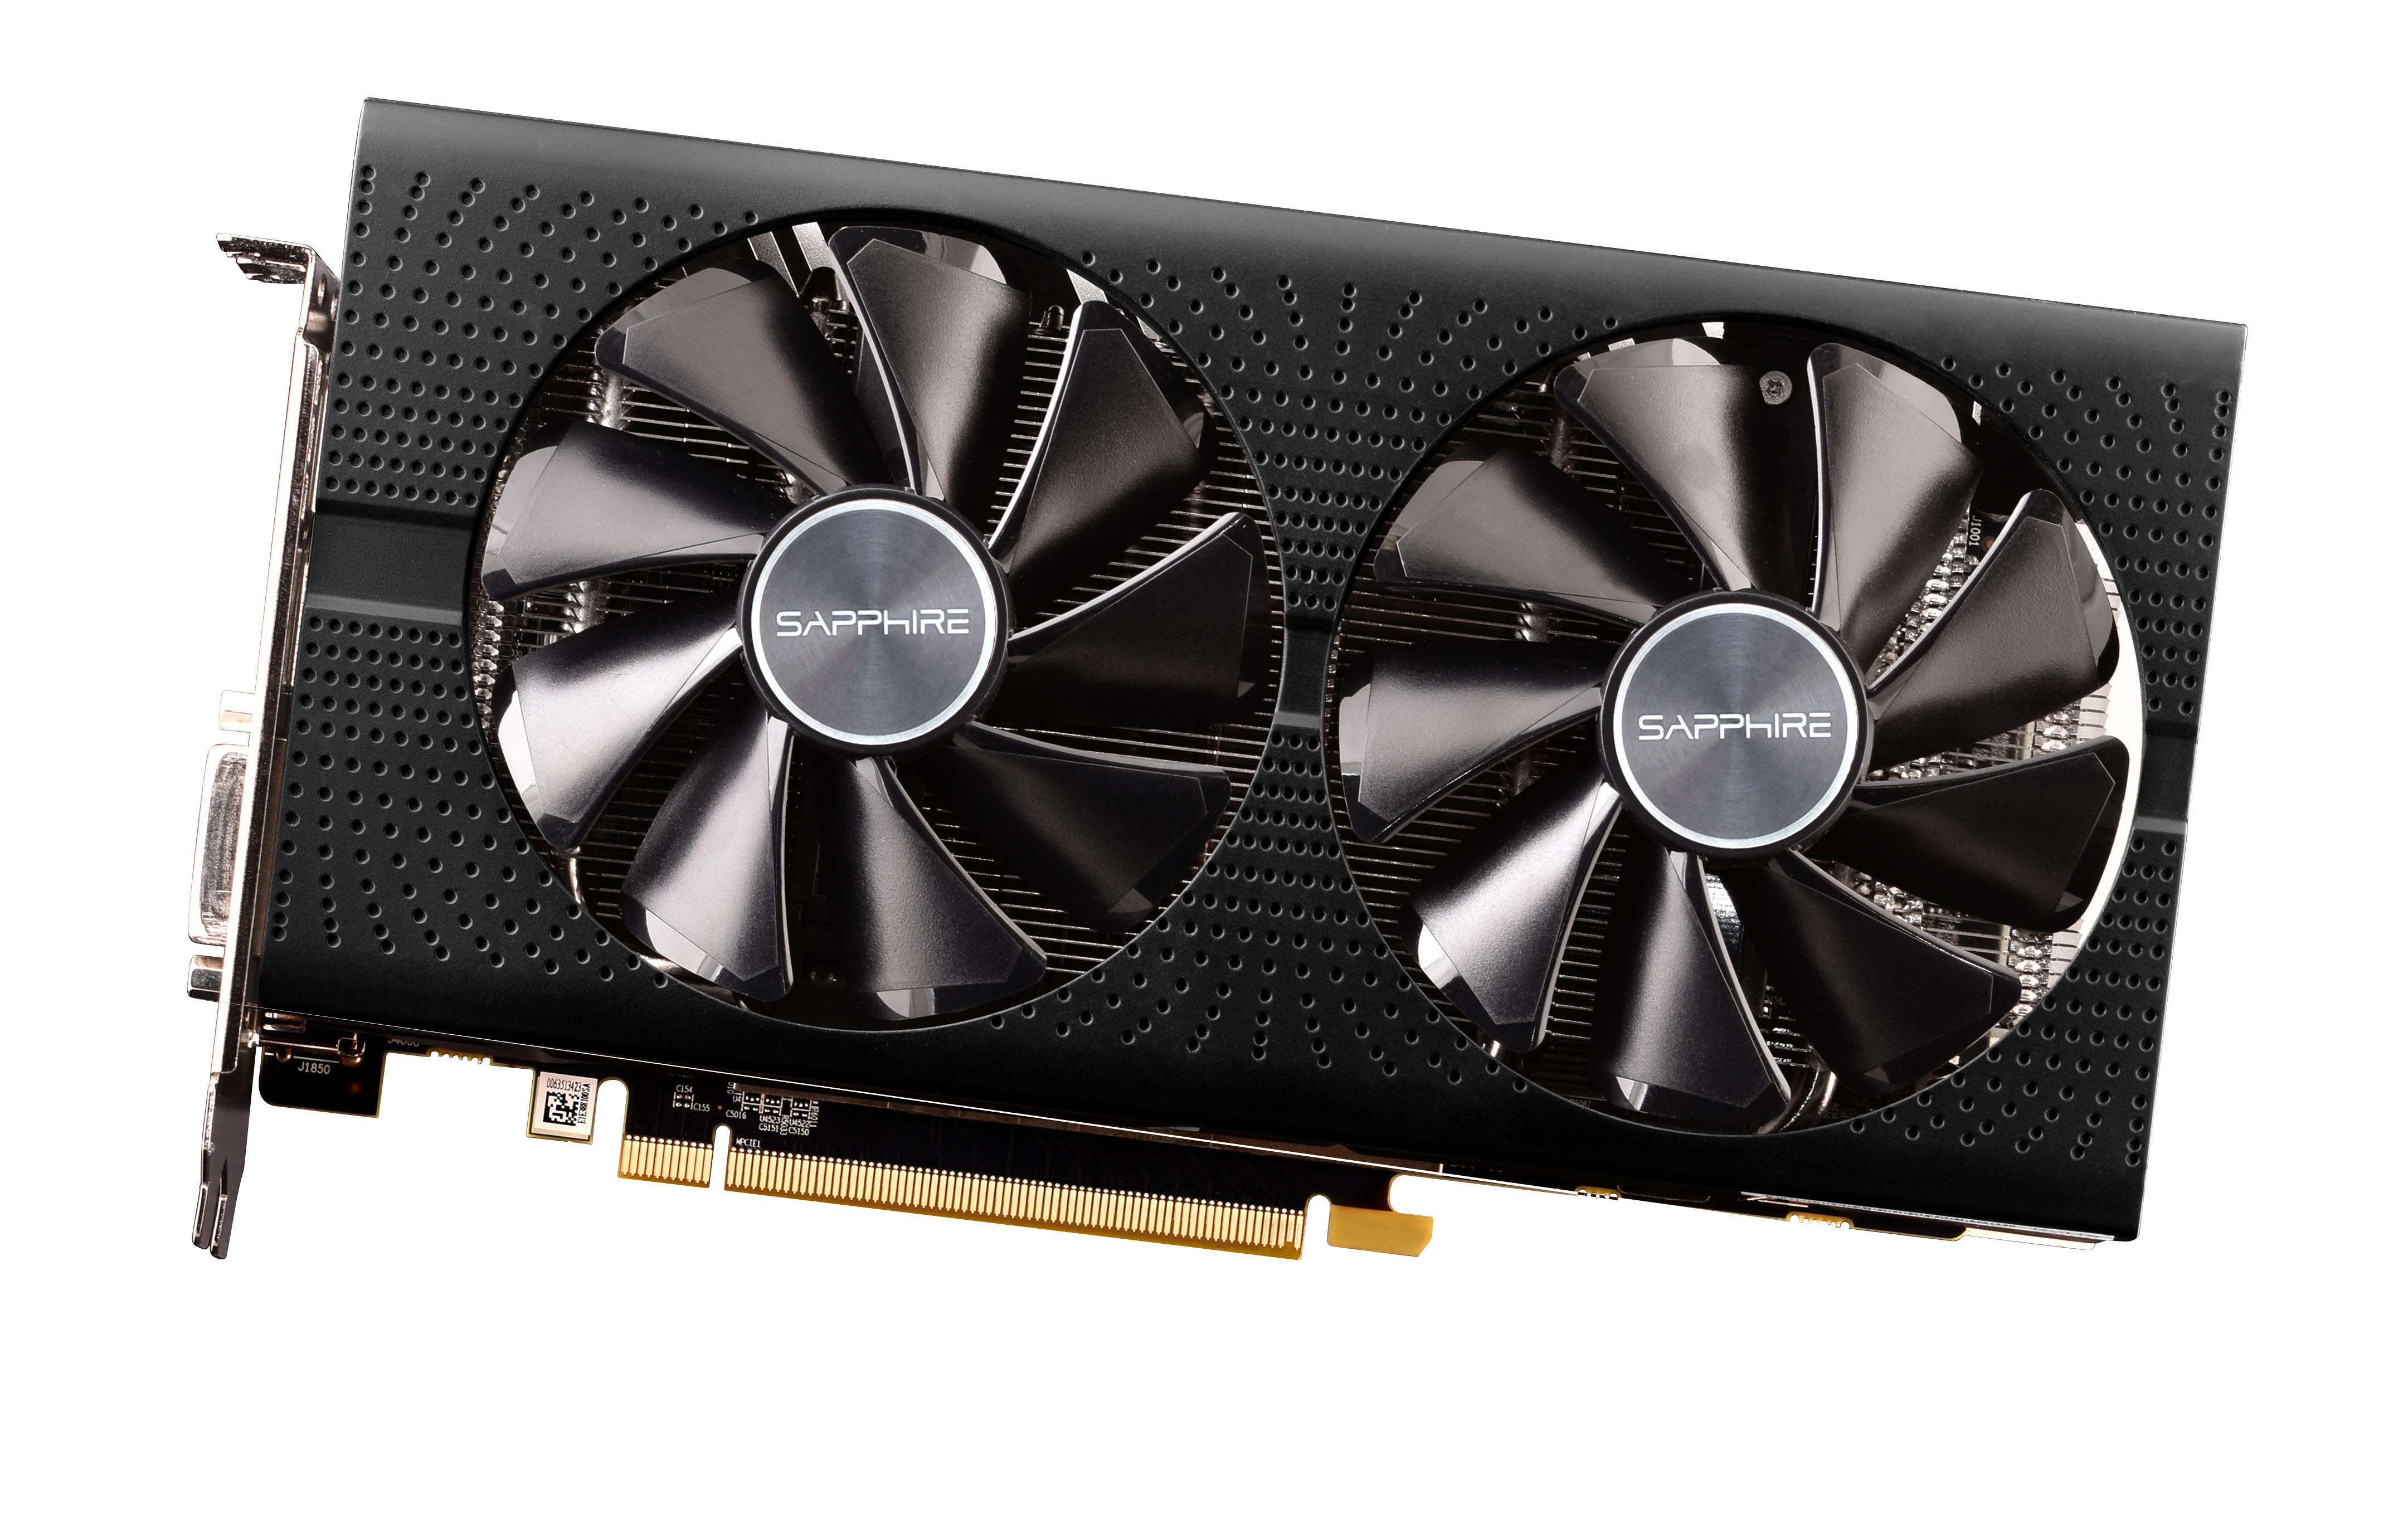 USED,Sapphire RX570 8GB Graphics Card 7000MHz GDDR5 256bits HDMI+DVI+DP*3 PCI-X16 Express3